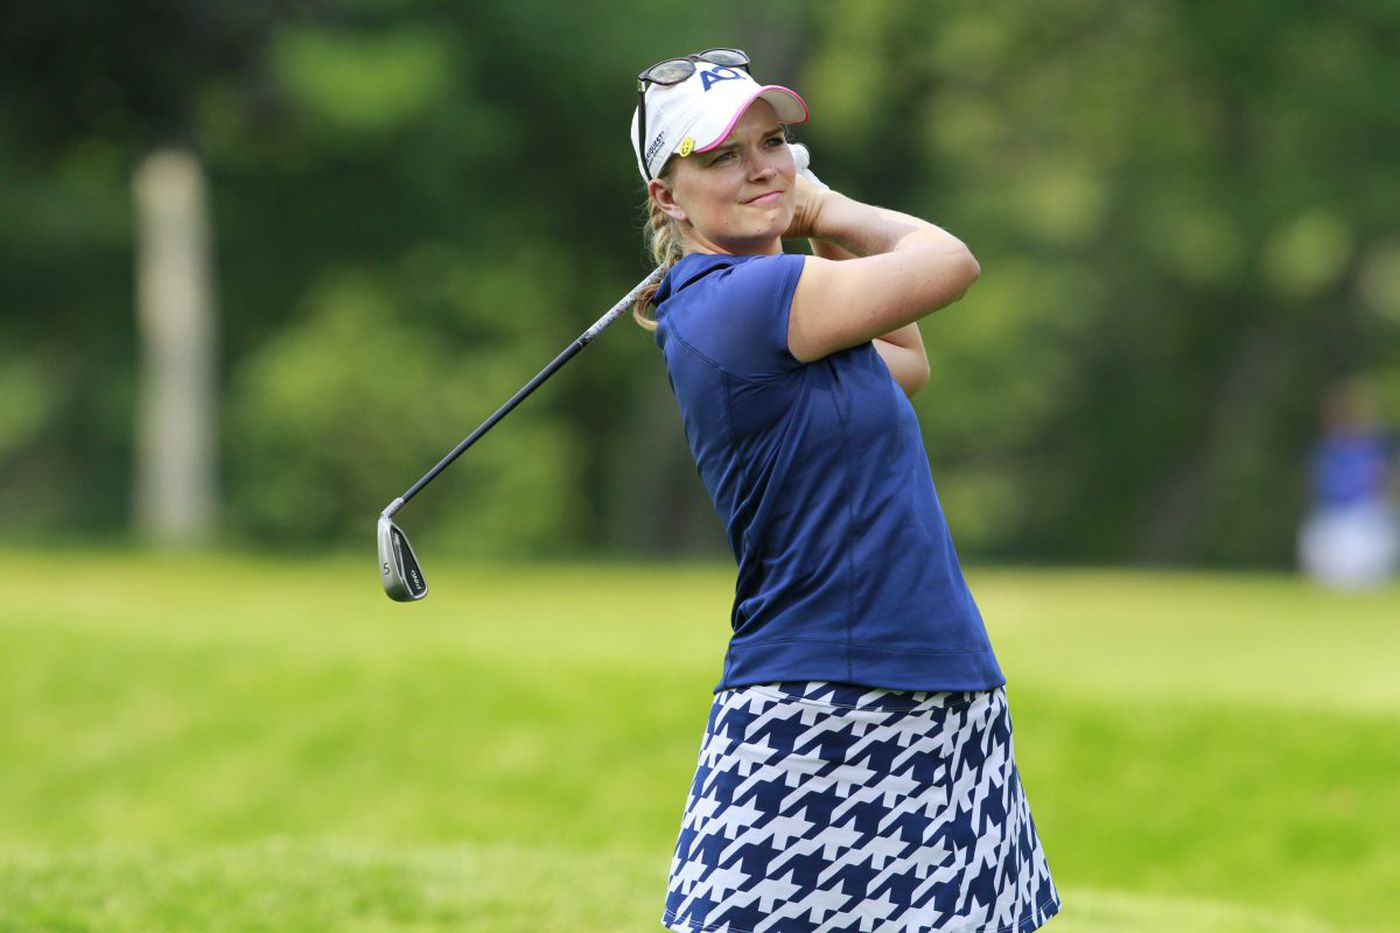 For Lafayette Hill's Emily Gimpel, finding success in pro golf is challenging